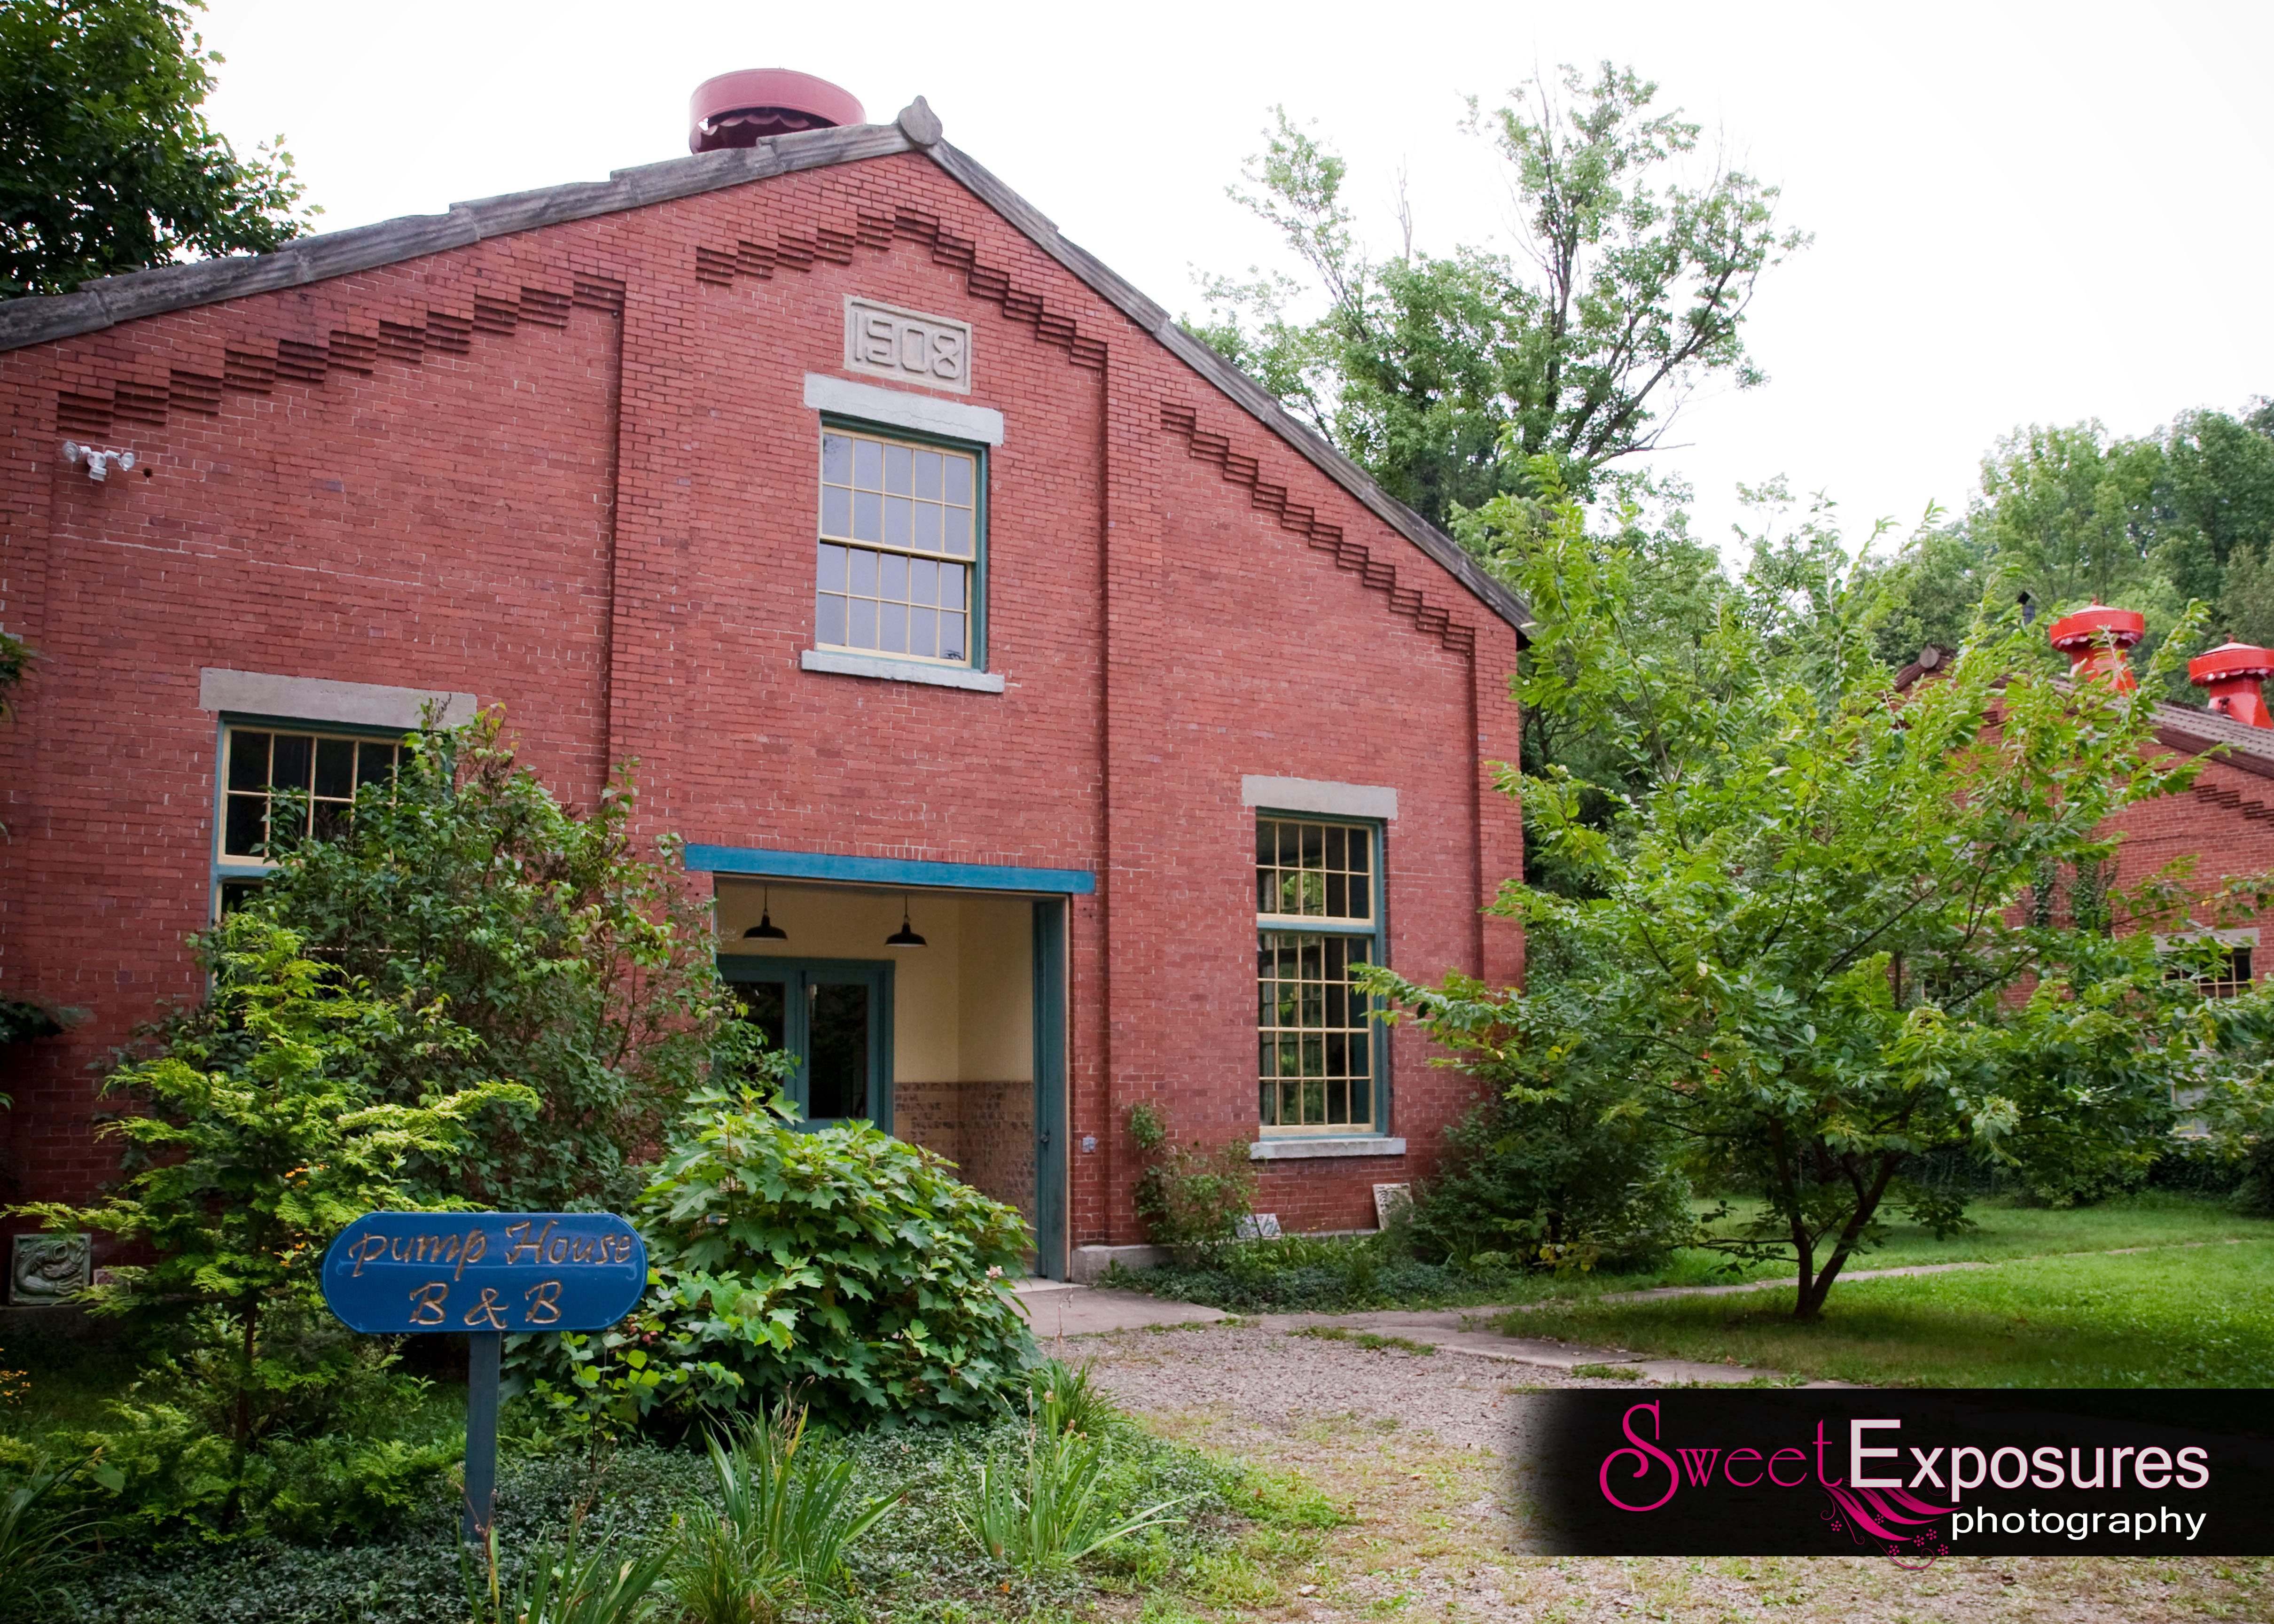 pump House Bed and Breakfast weddings